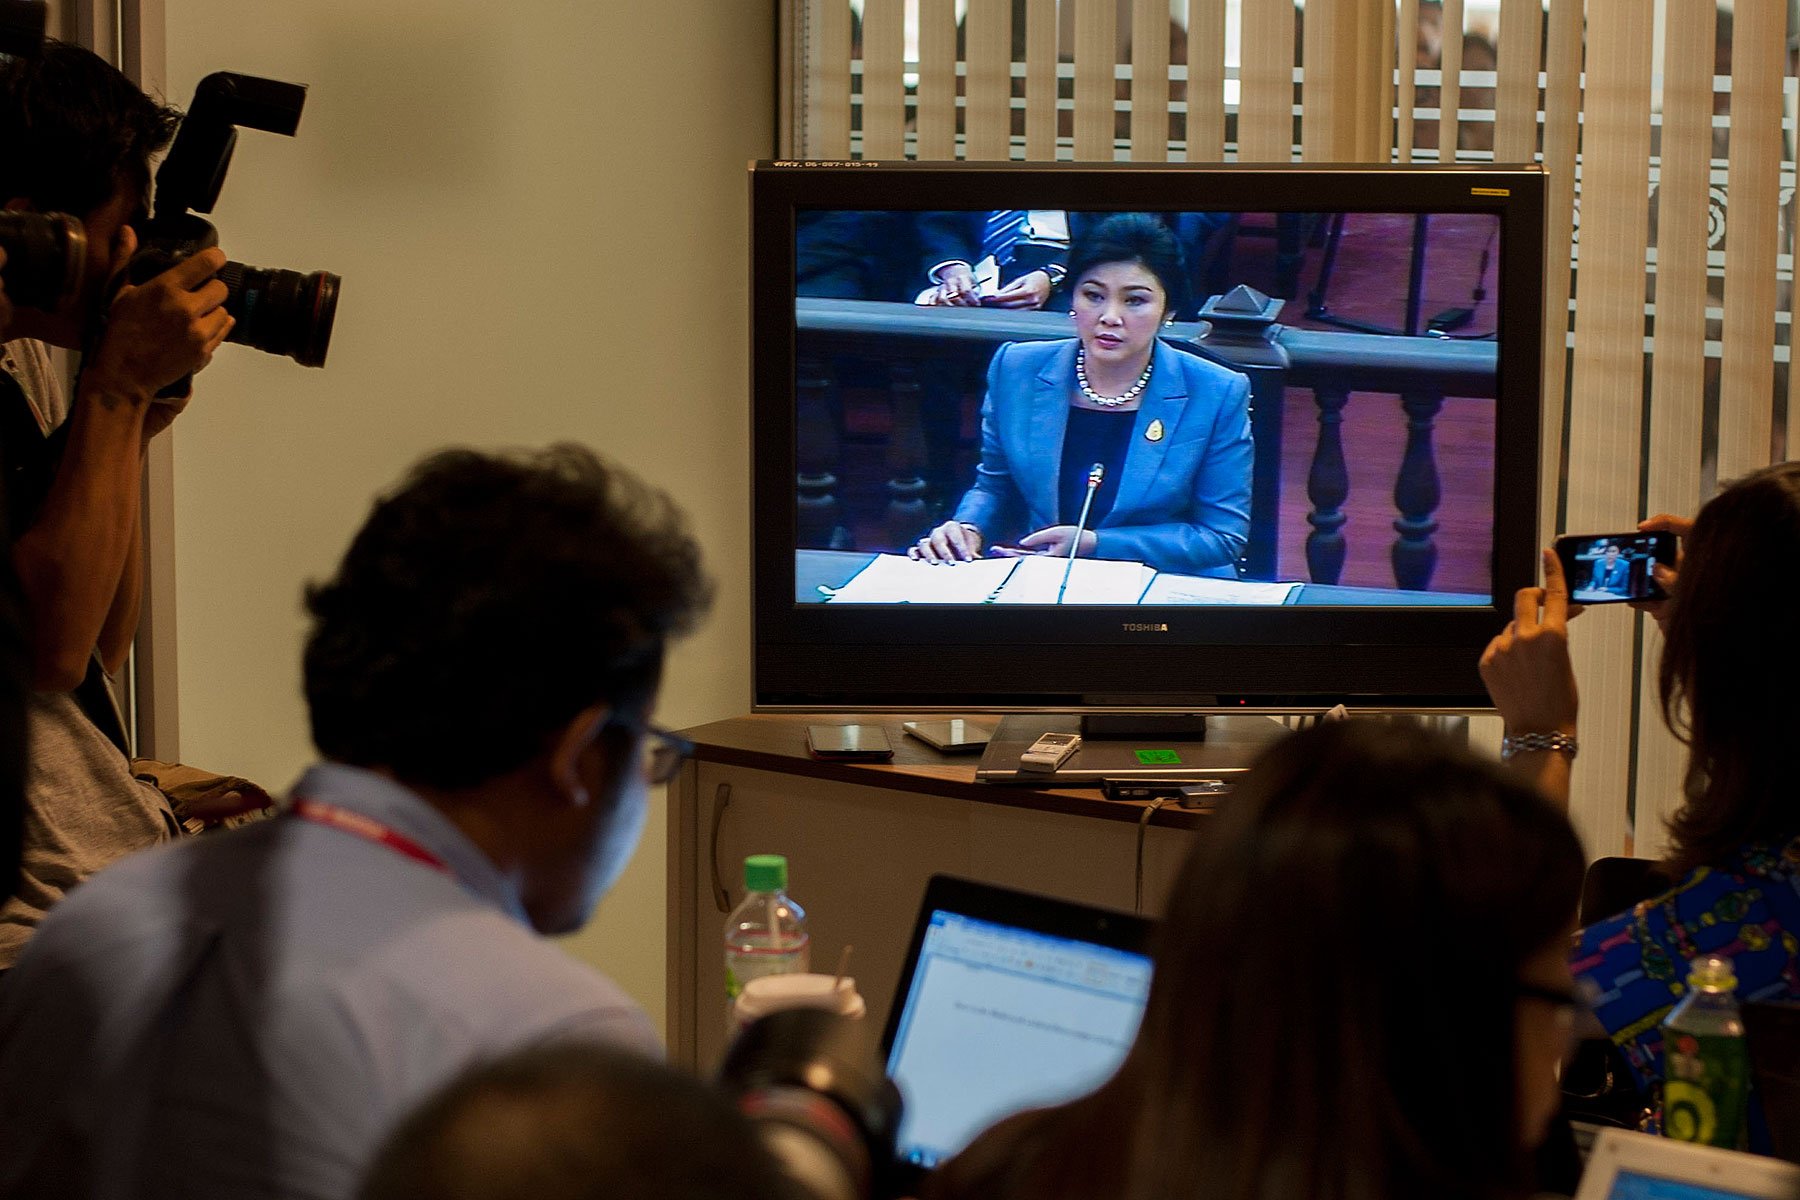 Thai Prime Minister Yingluck Shinawatra is seen on a TV during her statement at the Constitutional Court on May 6, 2014, in Bangkok